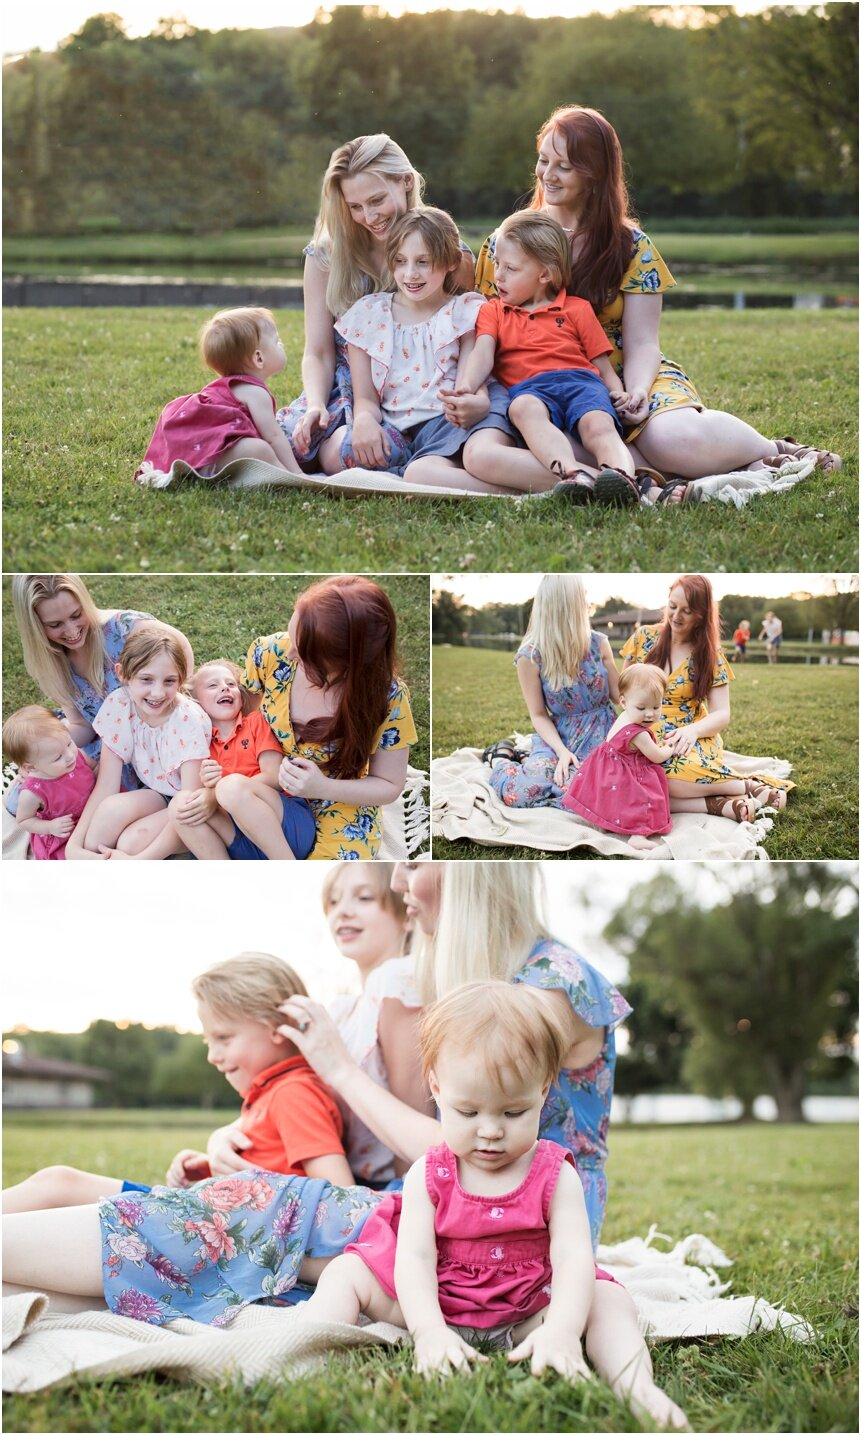 Oneonta Family Photographer, family snuggling together at park